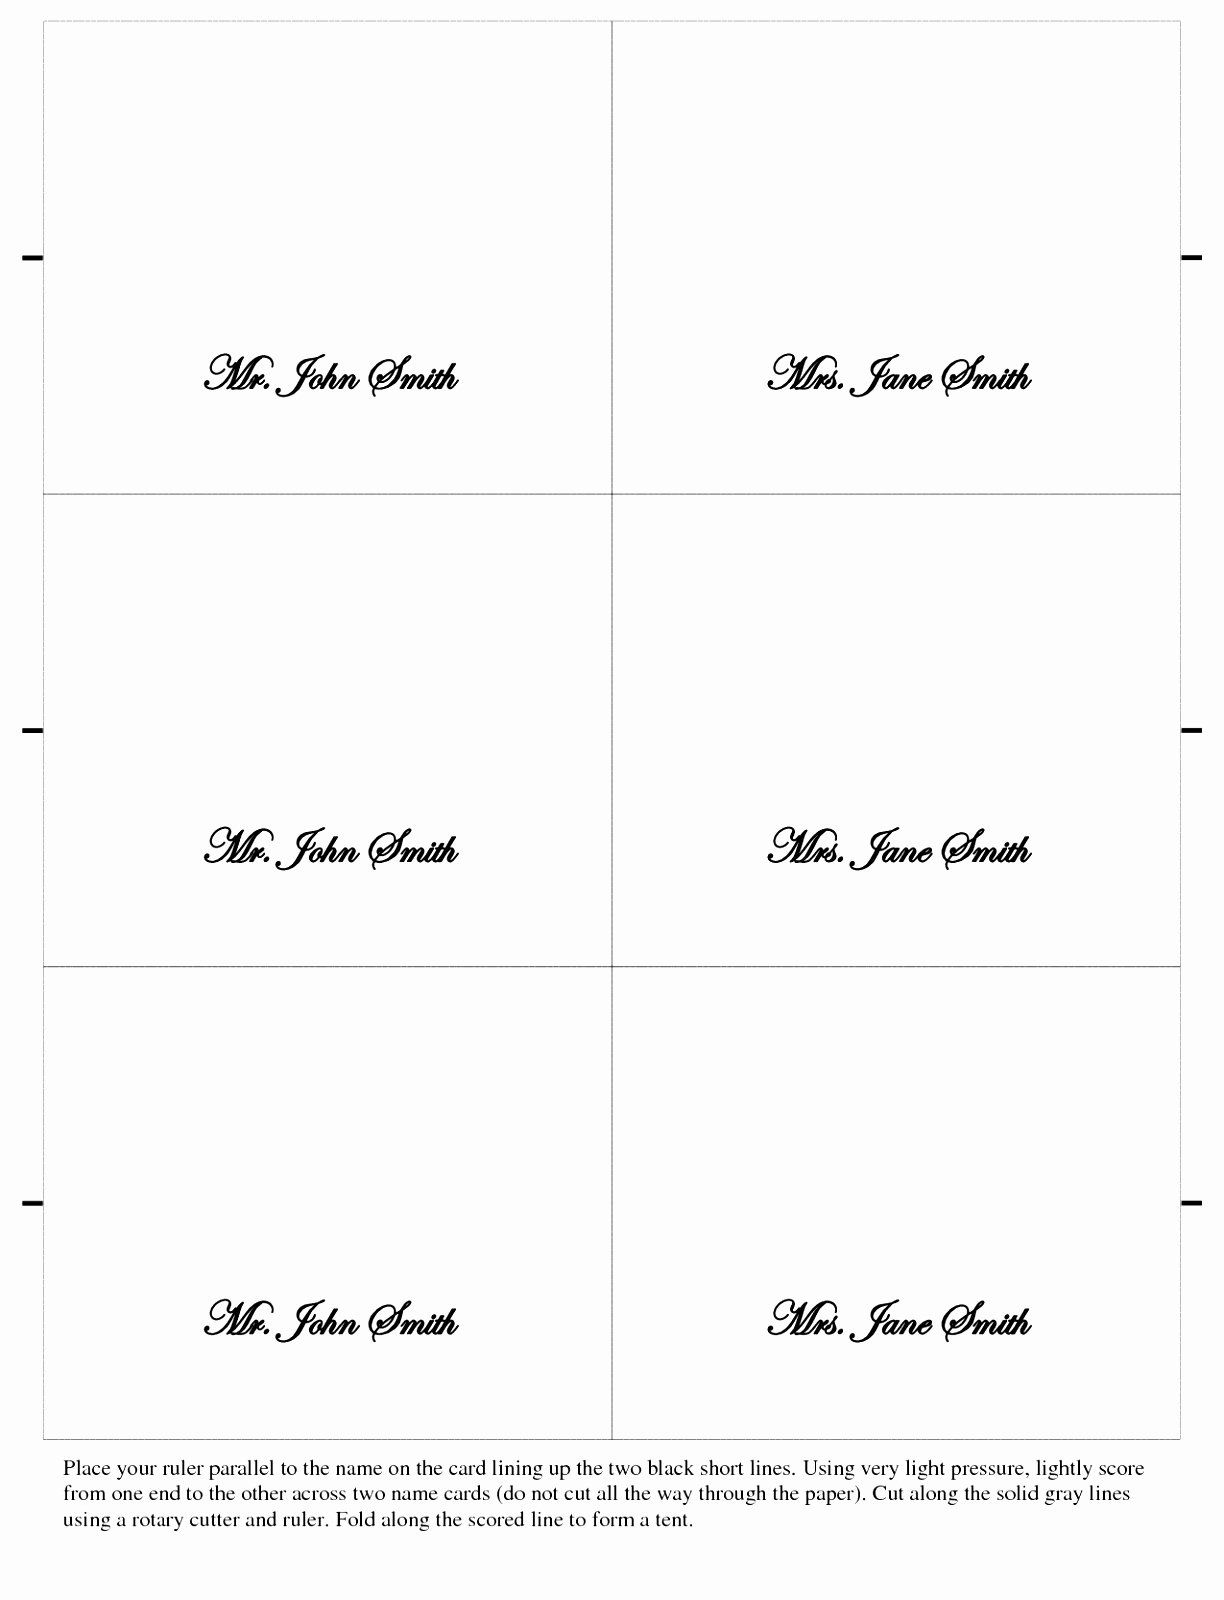 Place Cards Templates 6 Per Sheet Luxury 9 Place Card Template Word 6 Per Sheet Puiwy Wedding Place Card Templates Free Place Card Template Place Card Template